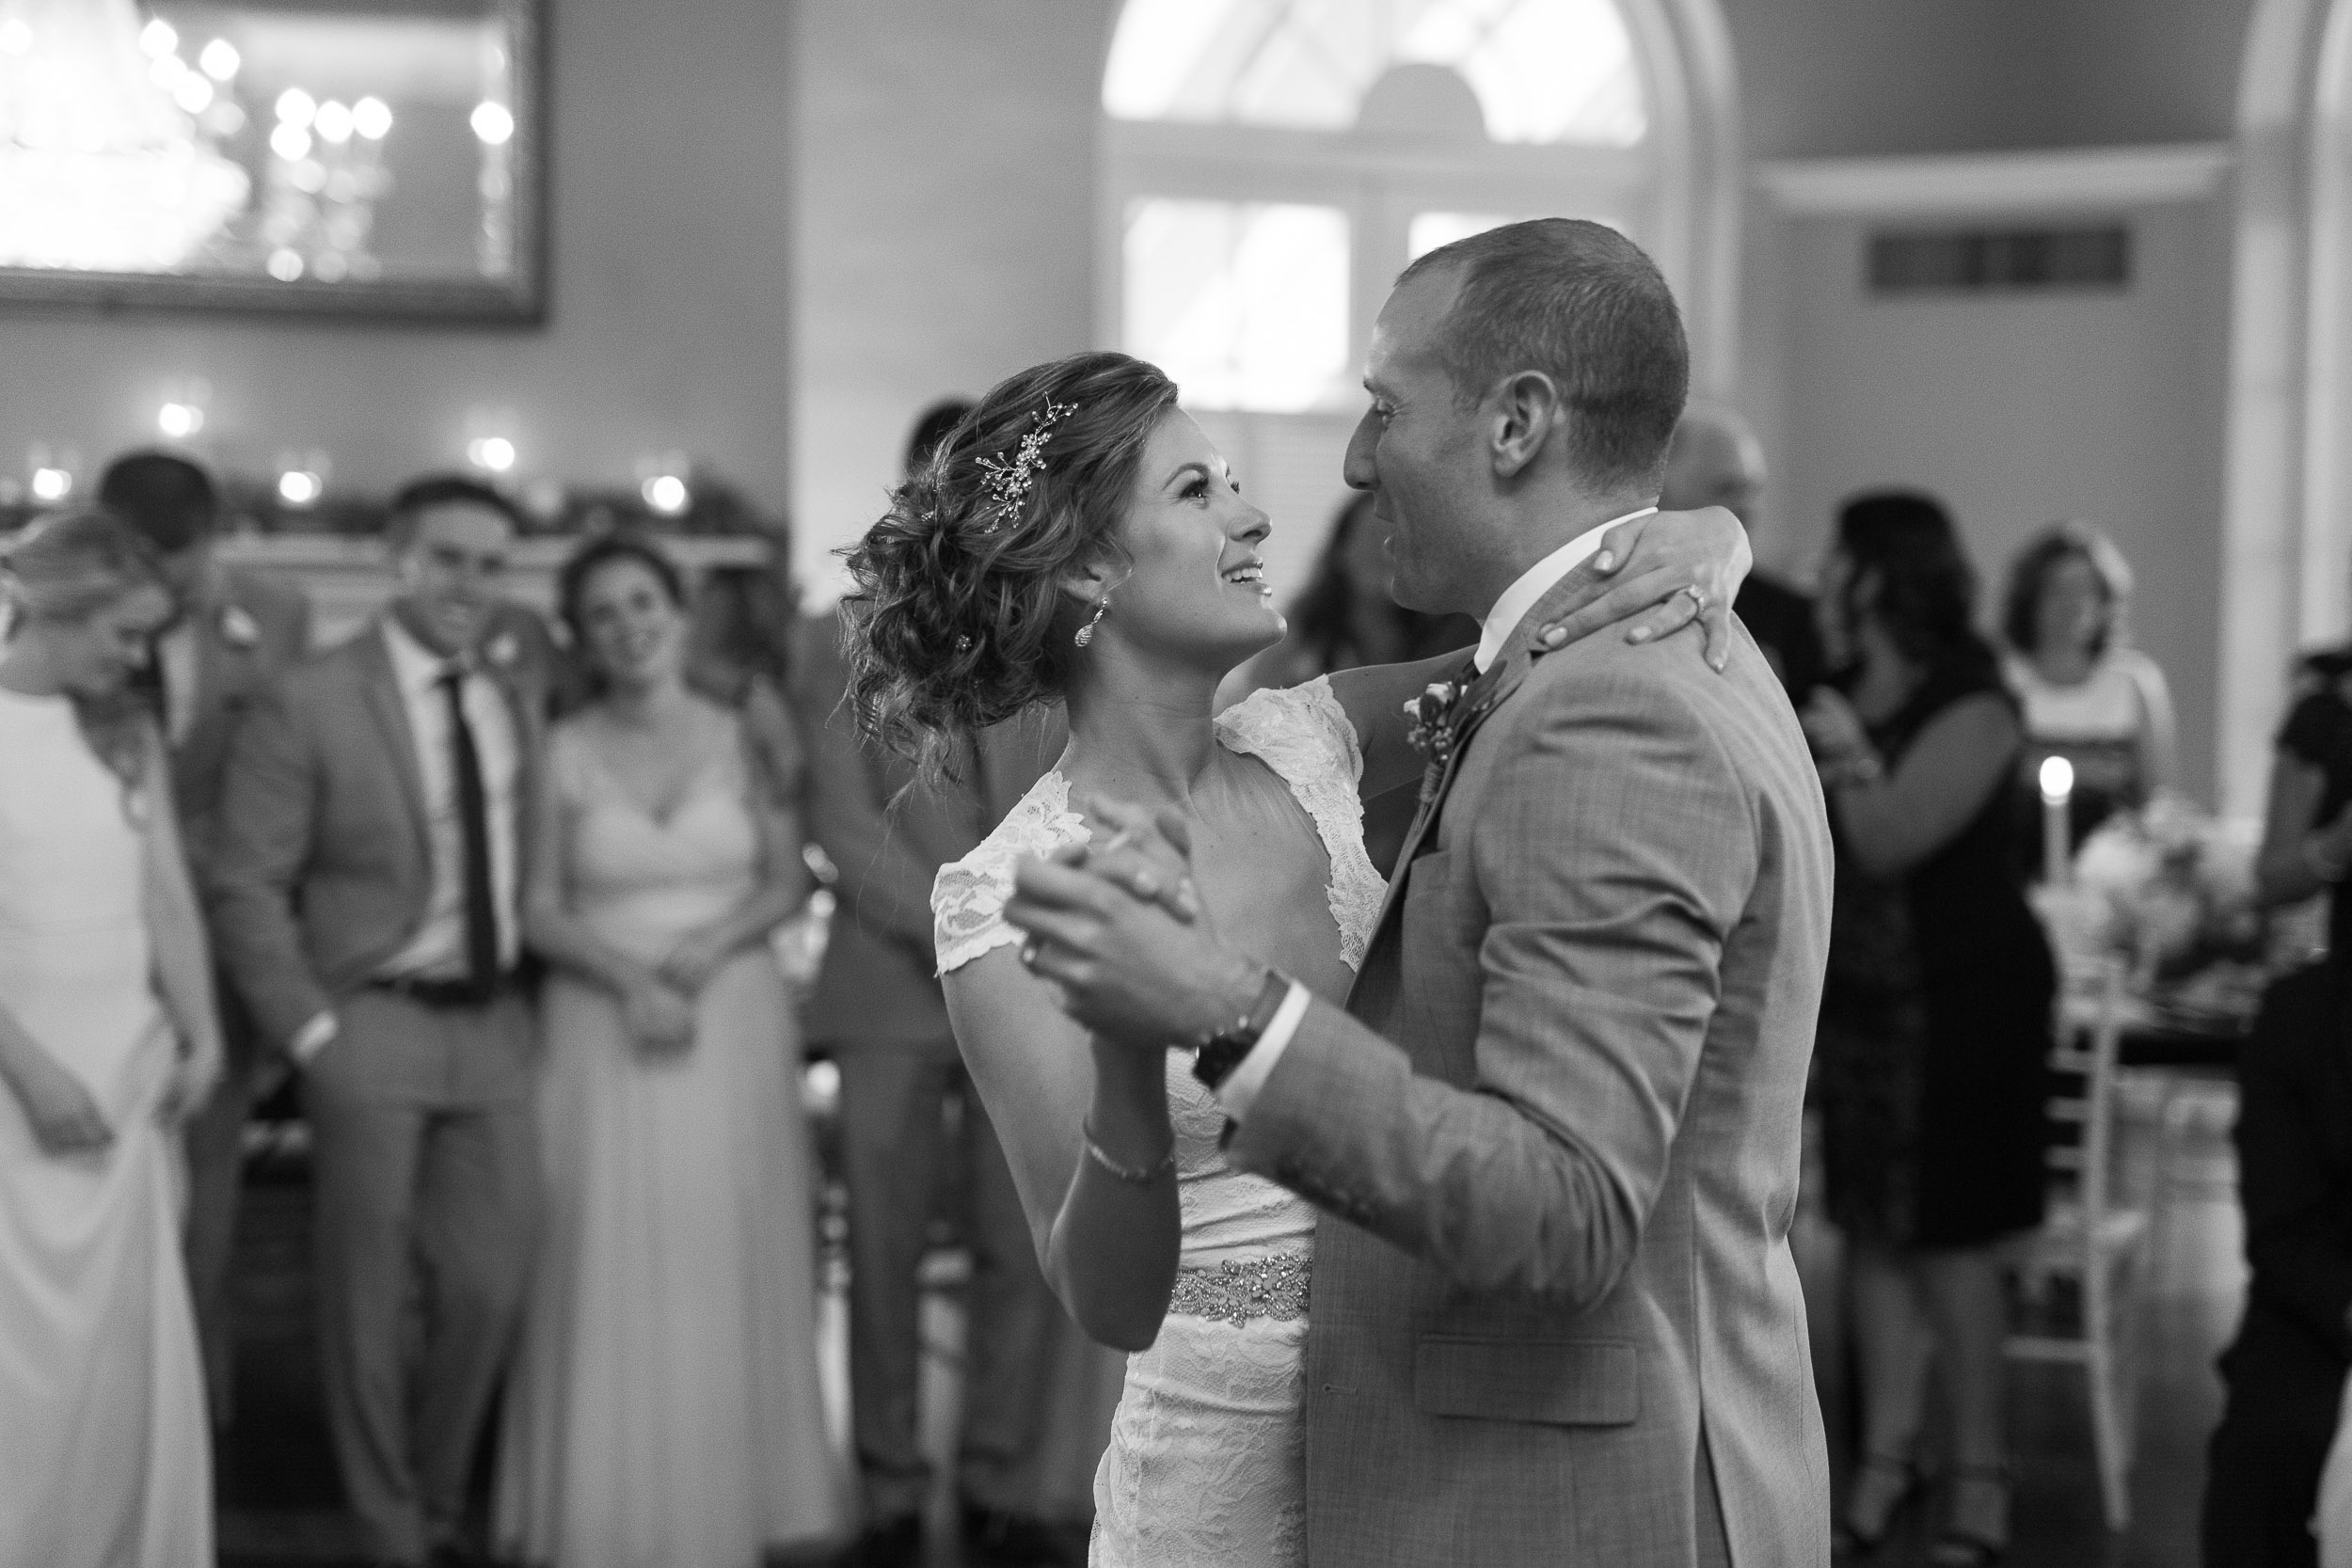 A Hudson Valley Wedding at The Highlands Country Club in Garrison, New York